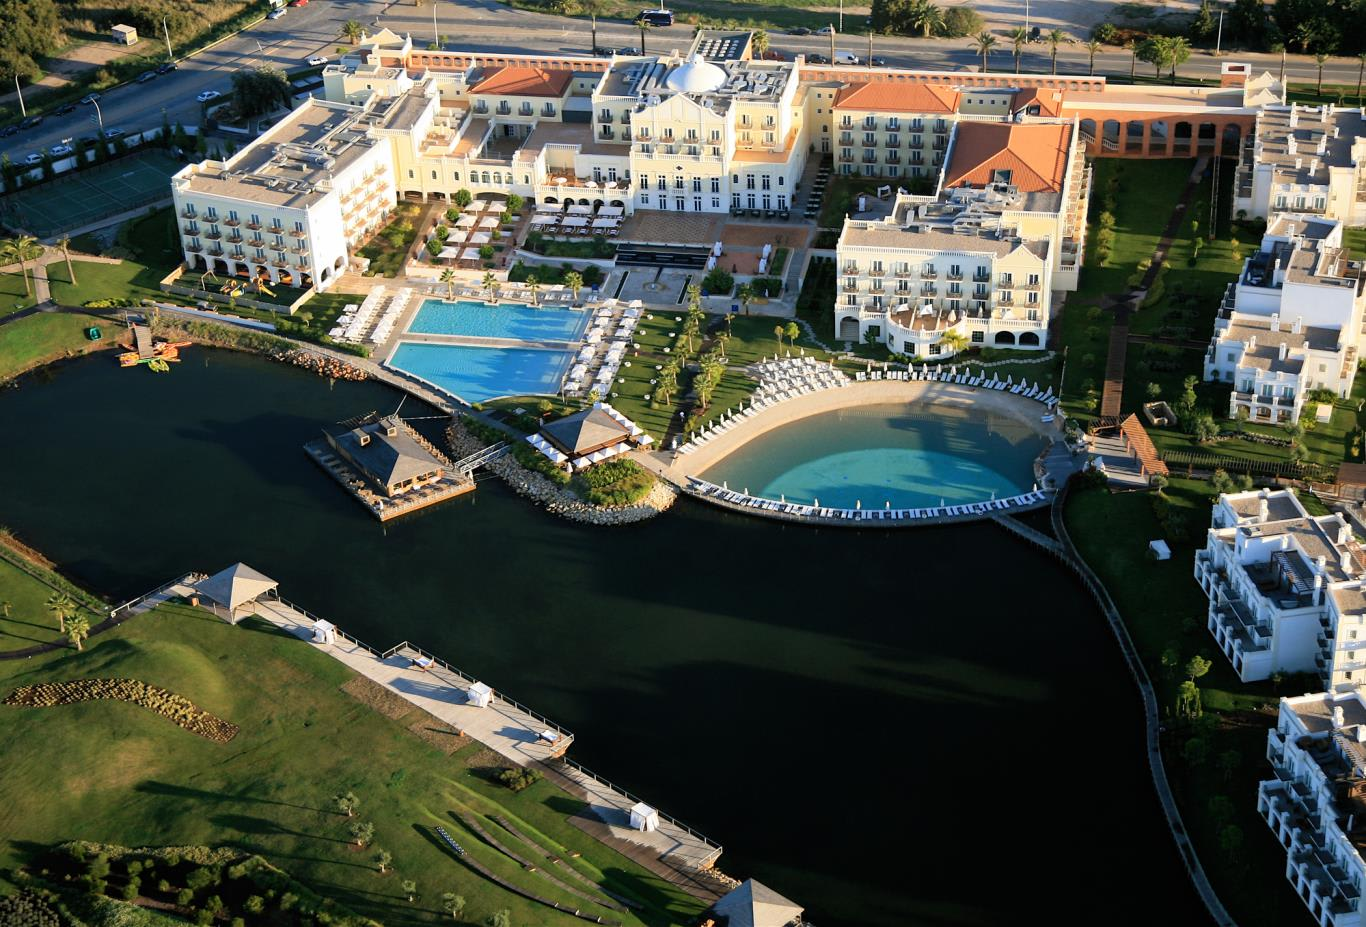 The Lake Spa Resort Aerial View